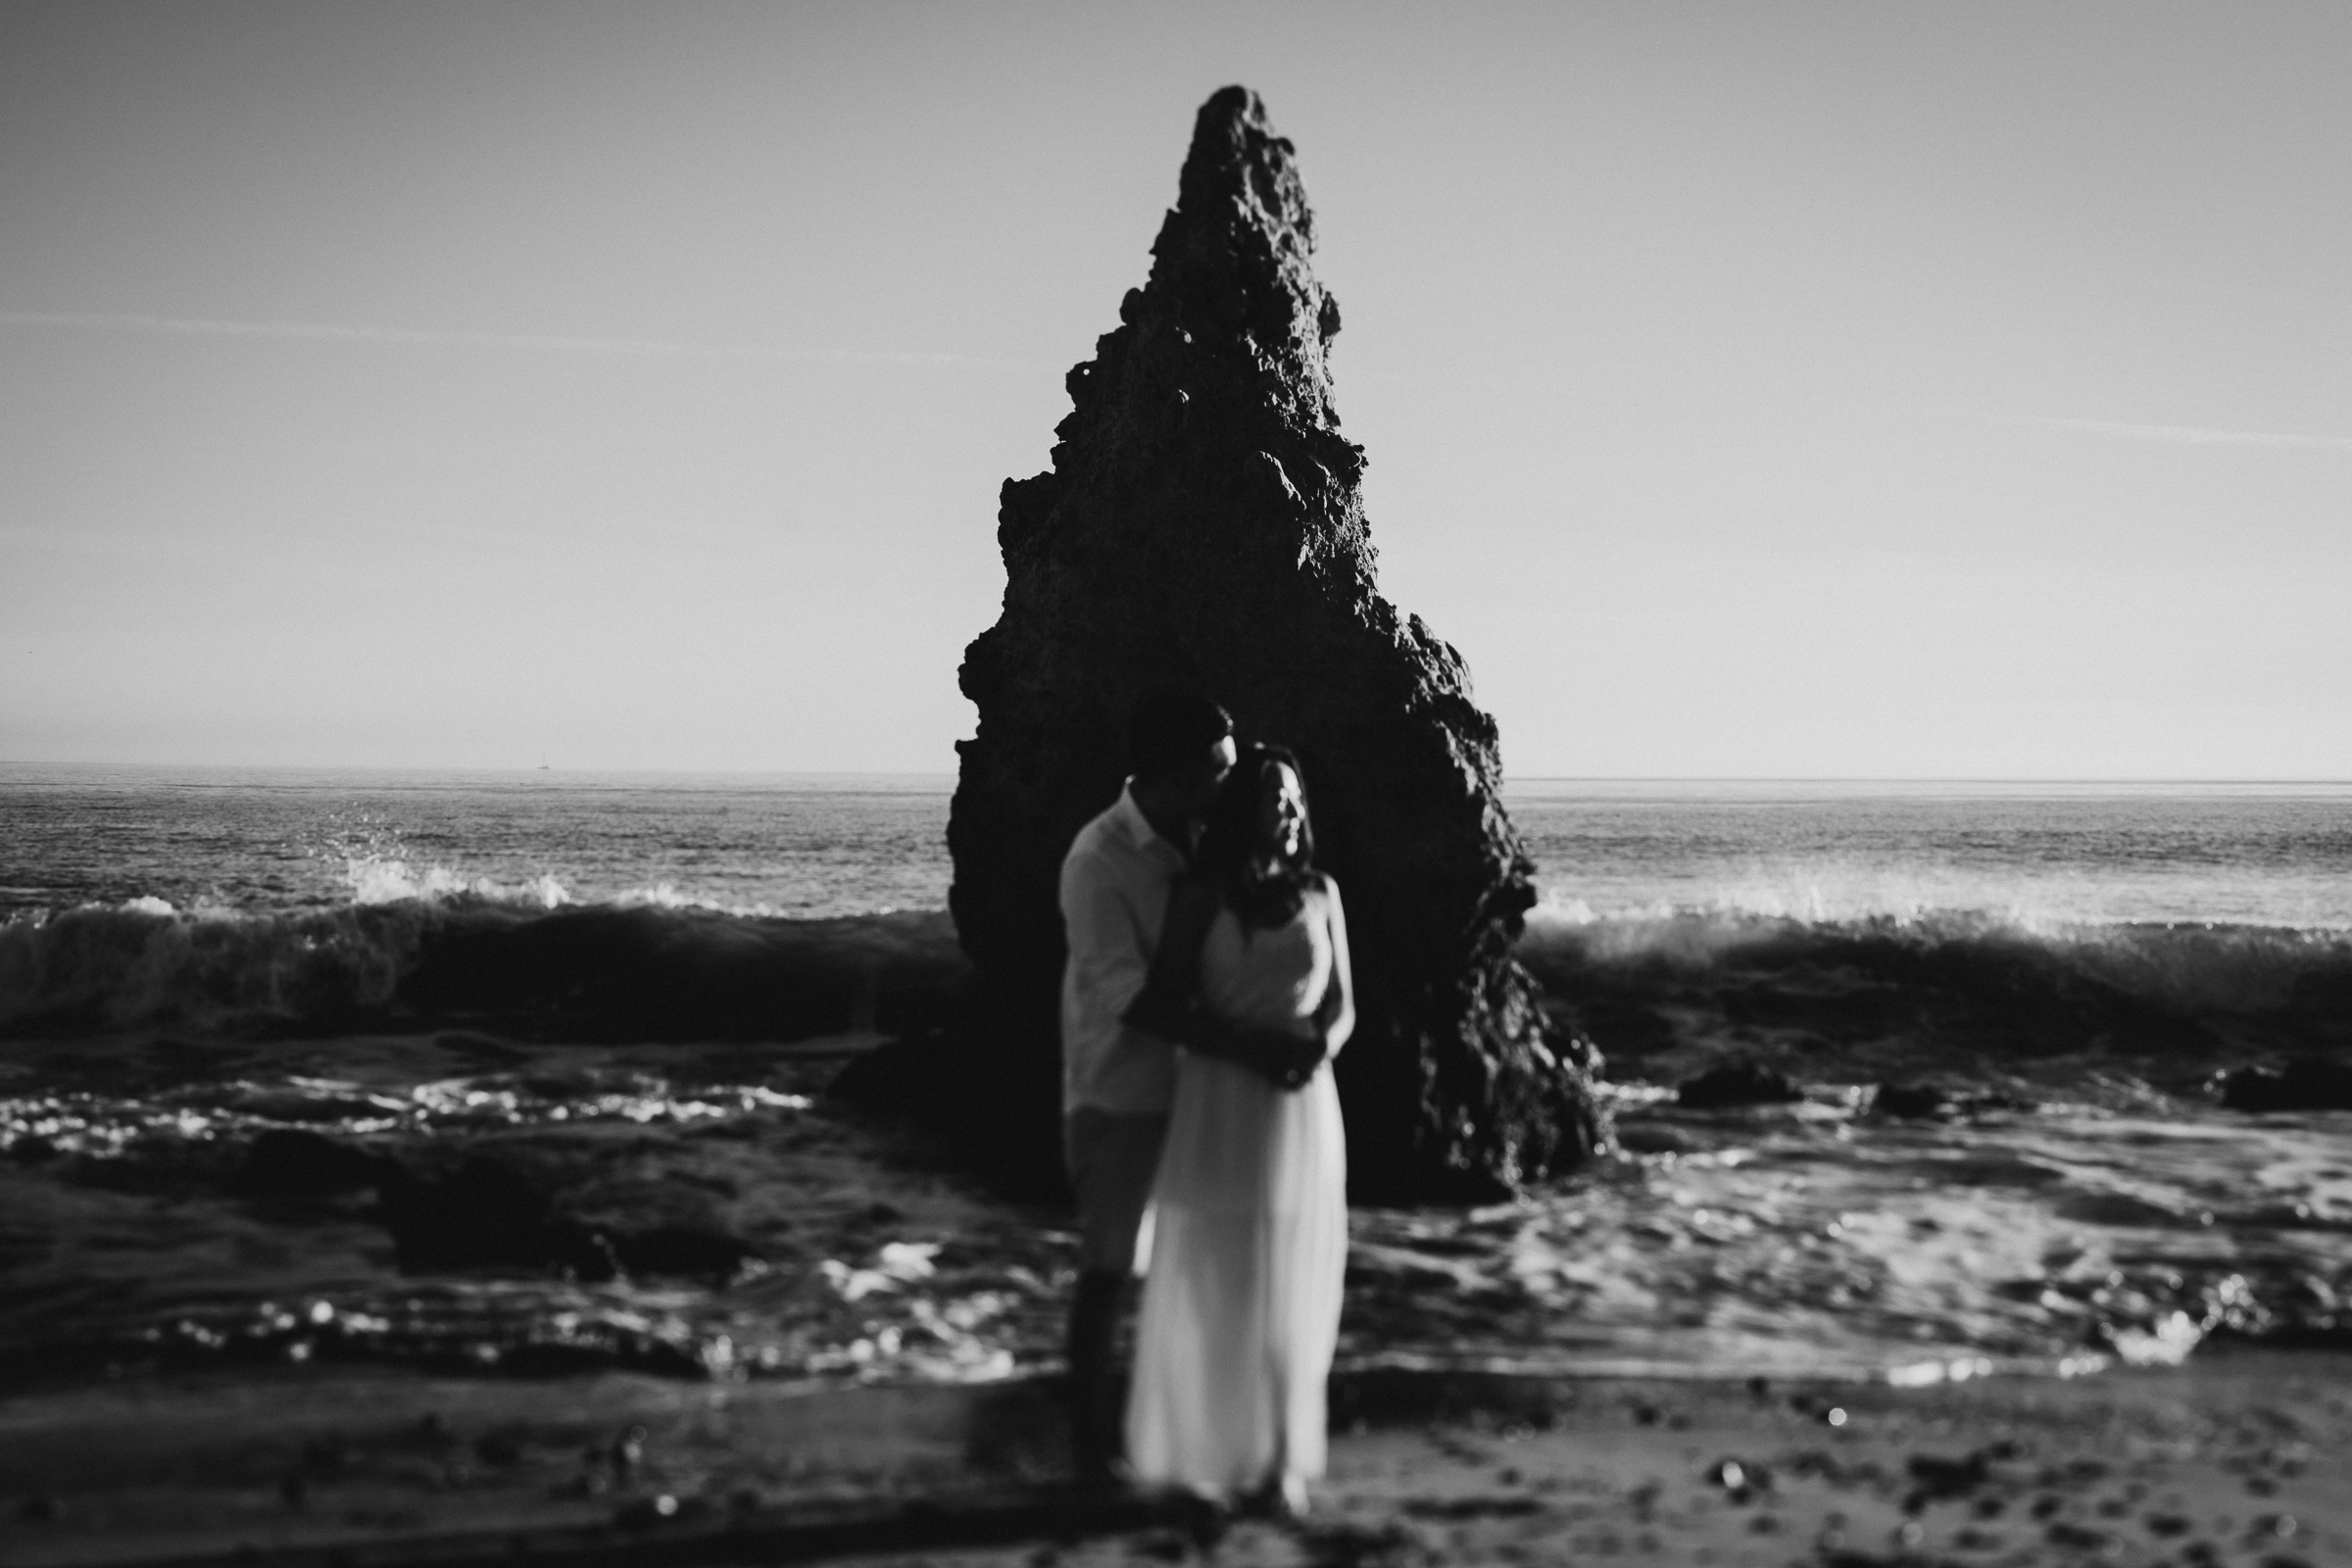 Malibu-El-Matador-State-Beach-Sunset-Engagement-Photos-Los-Angeles-Documentary-Wedding-Photographer-18.jpg